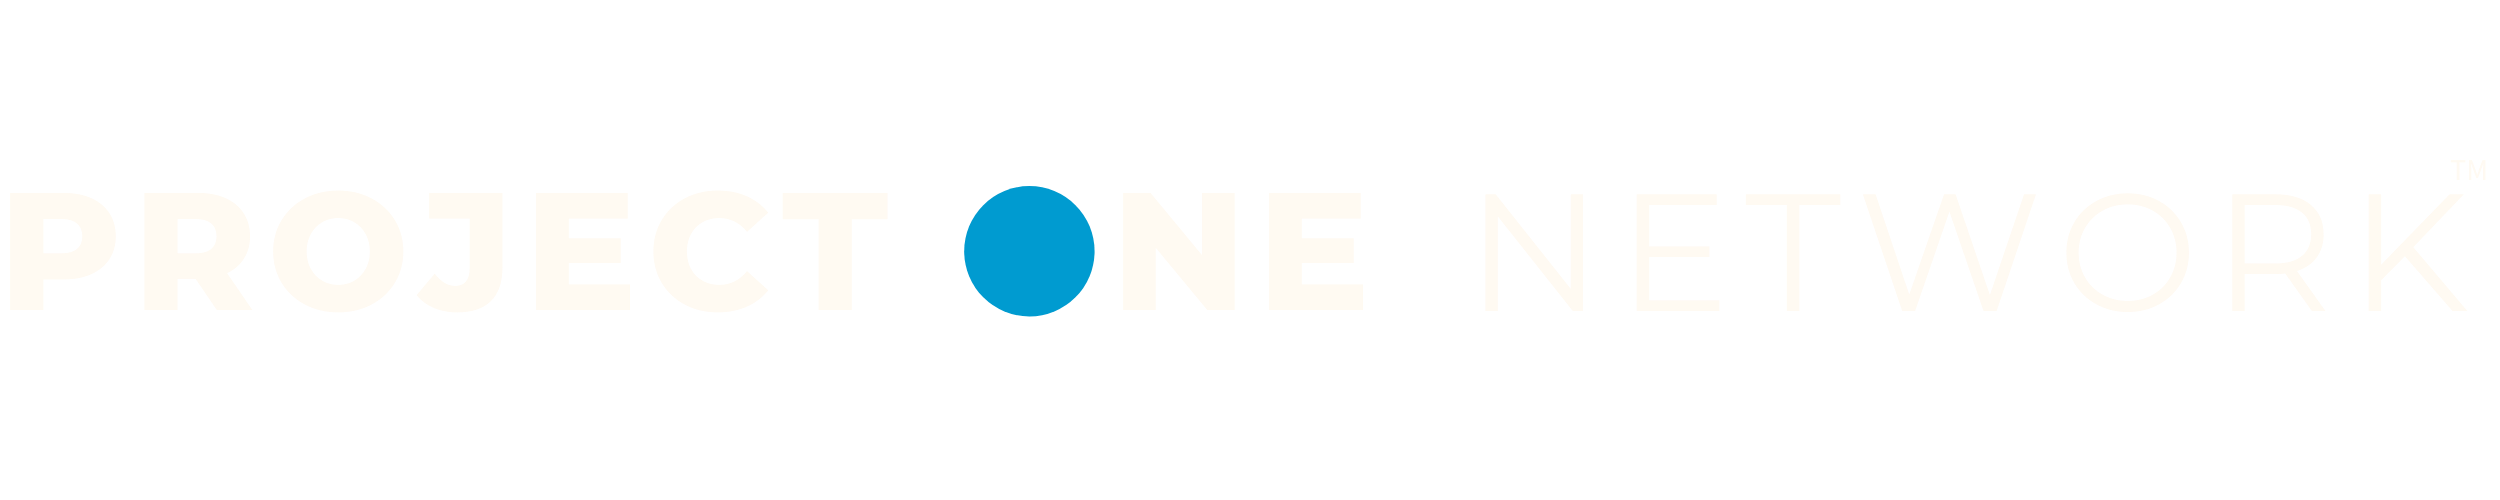 Project One Network Logo